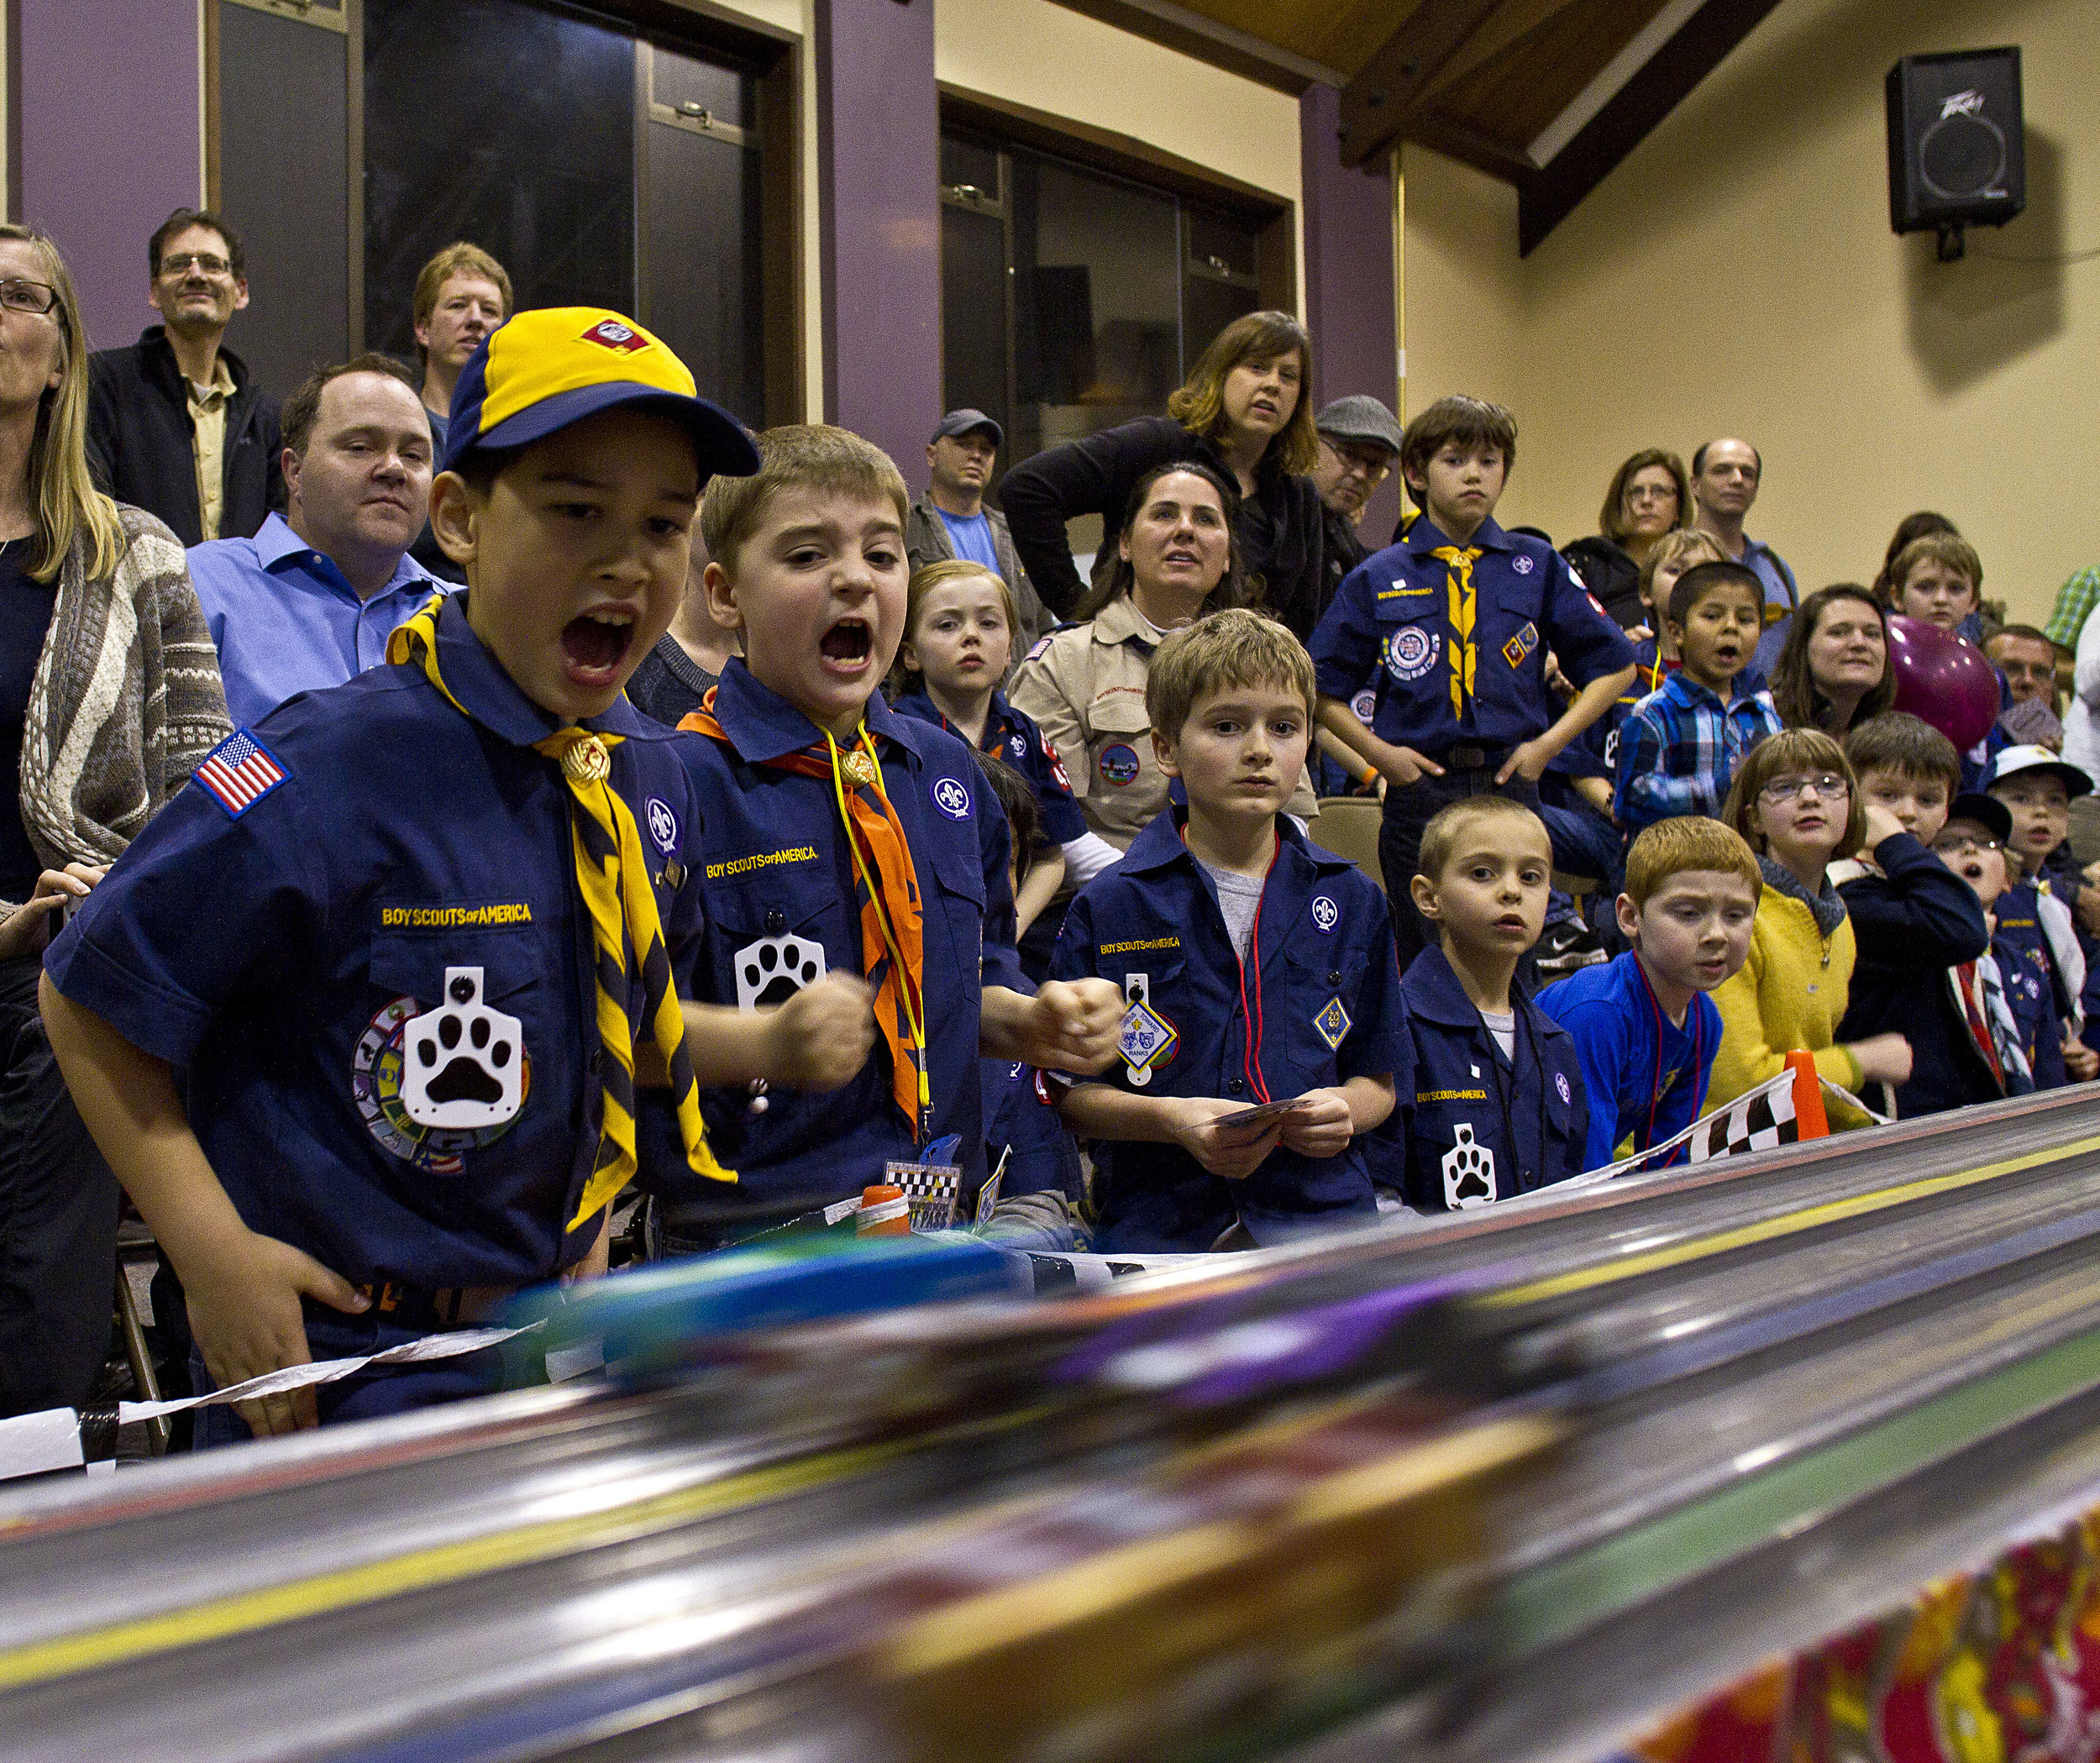 Cub scouts cheer at an annual pine wood derby racing event on Bainbridge Island.